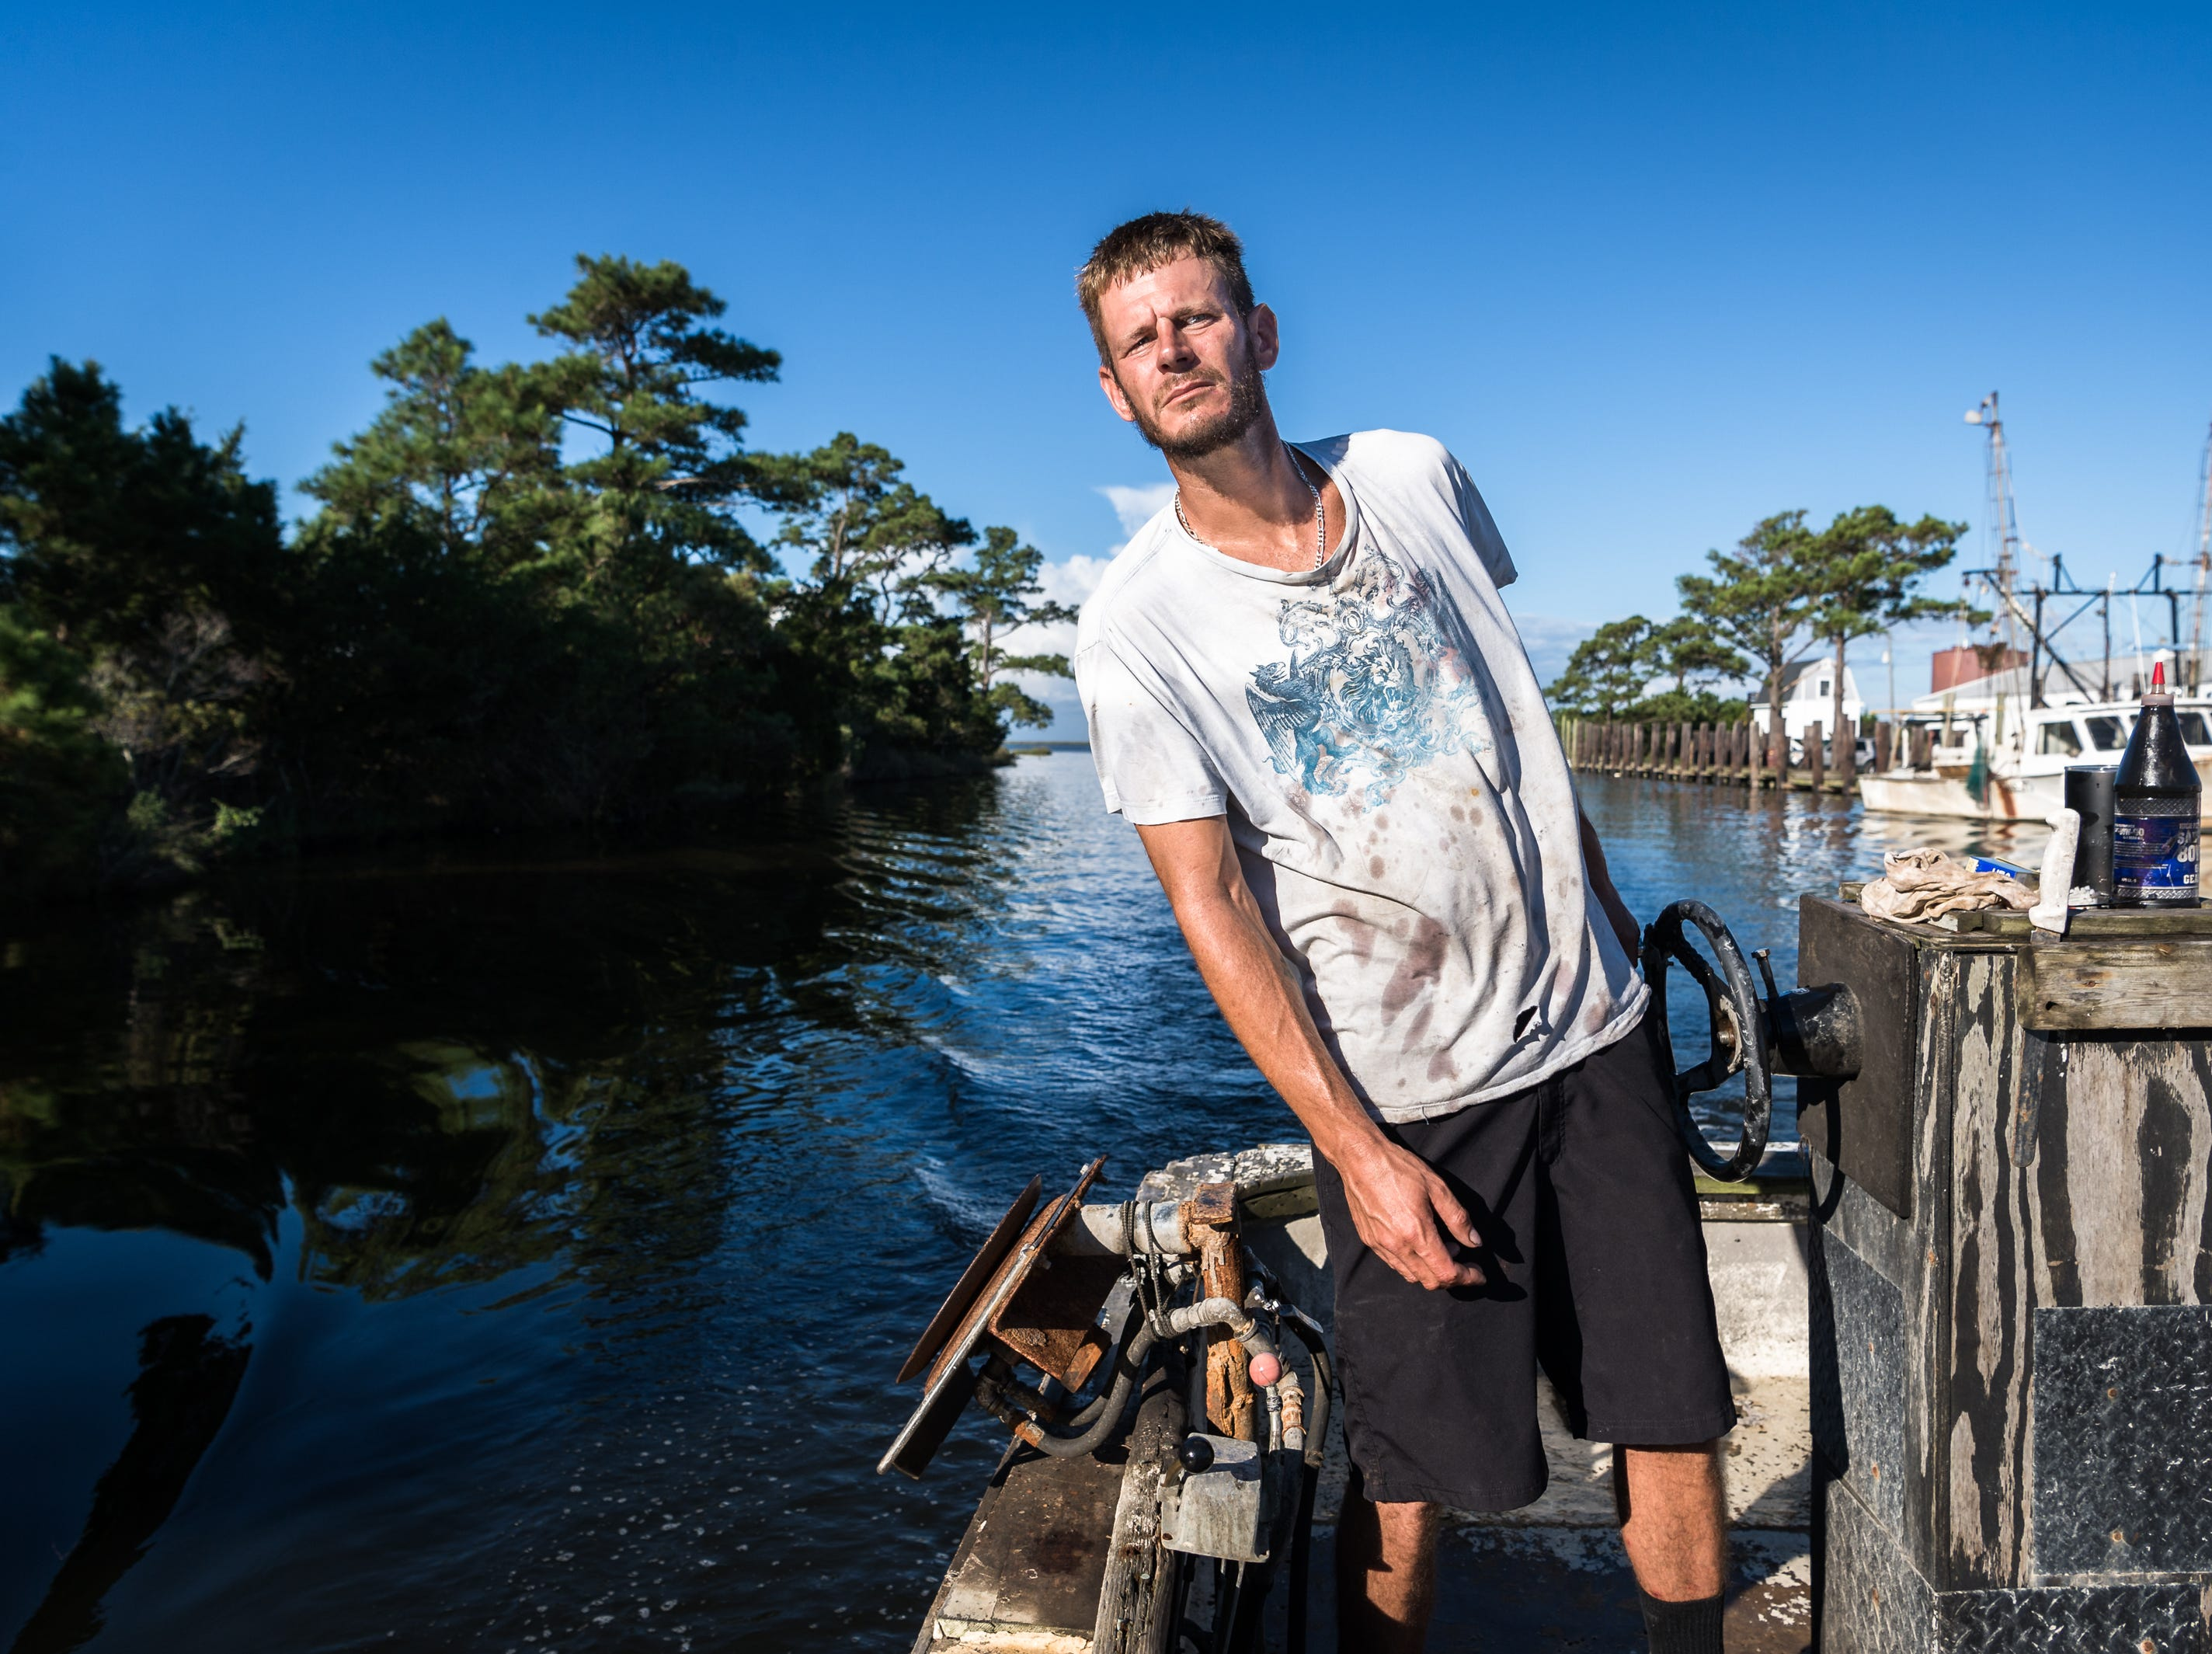 Dane Evans, a fisherman, 36, of Swan Quarter, drives his 31-year-old boat, Captain Drew, named after his six-year-old son, around the Swanquarter Bay, Sept. 12, 2018. As Hurricane Florence moves in, a storm surge of about three to six feet is expected for Swan Quarter, and around six feet for Ocracoke Island with 12-20 inches of rainfall for the entire area. Hyde county as well as several surrounding counties are under mandatory evacuation. Evans will be traveling to Washington, NC to stay with his girlfriend during the hurricane.